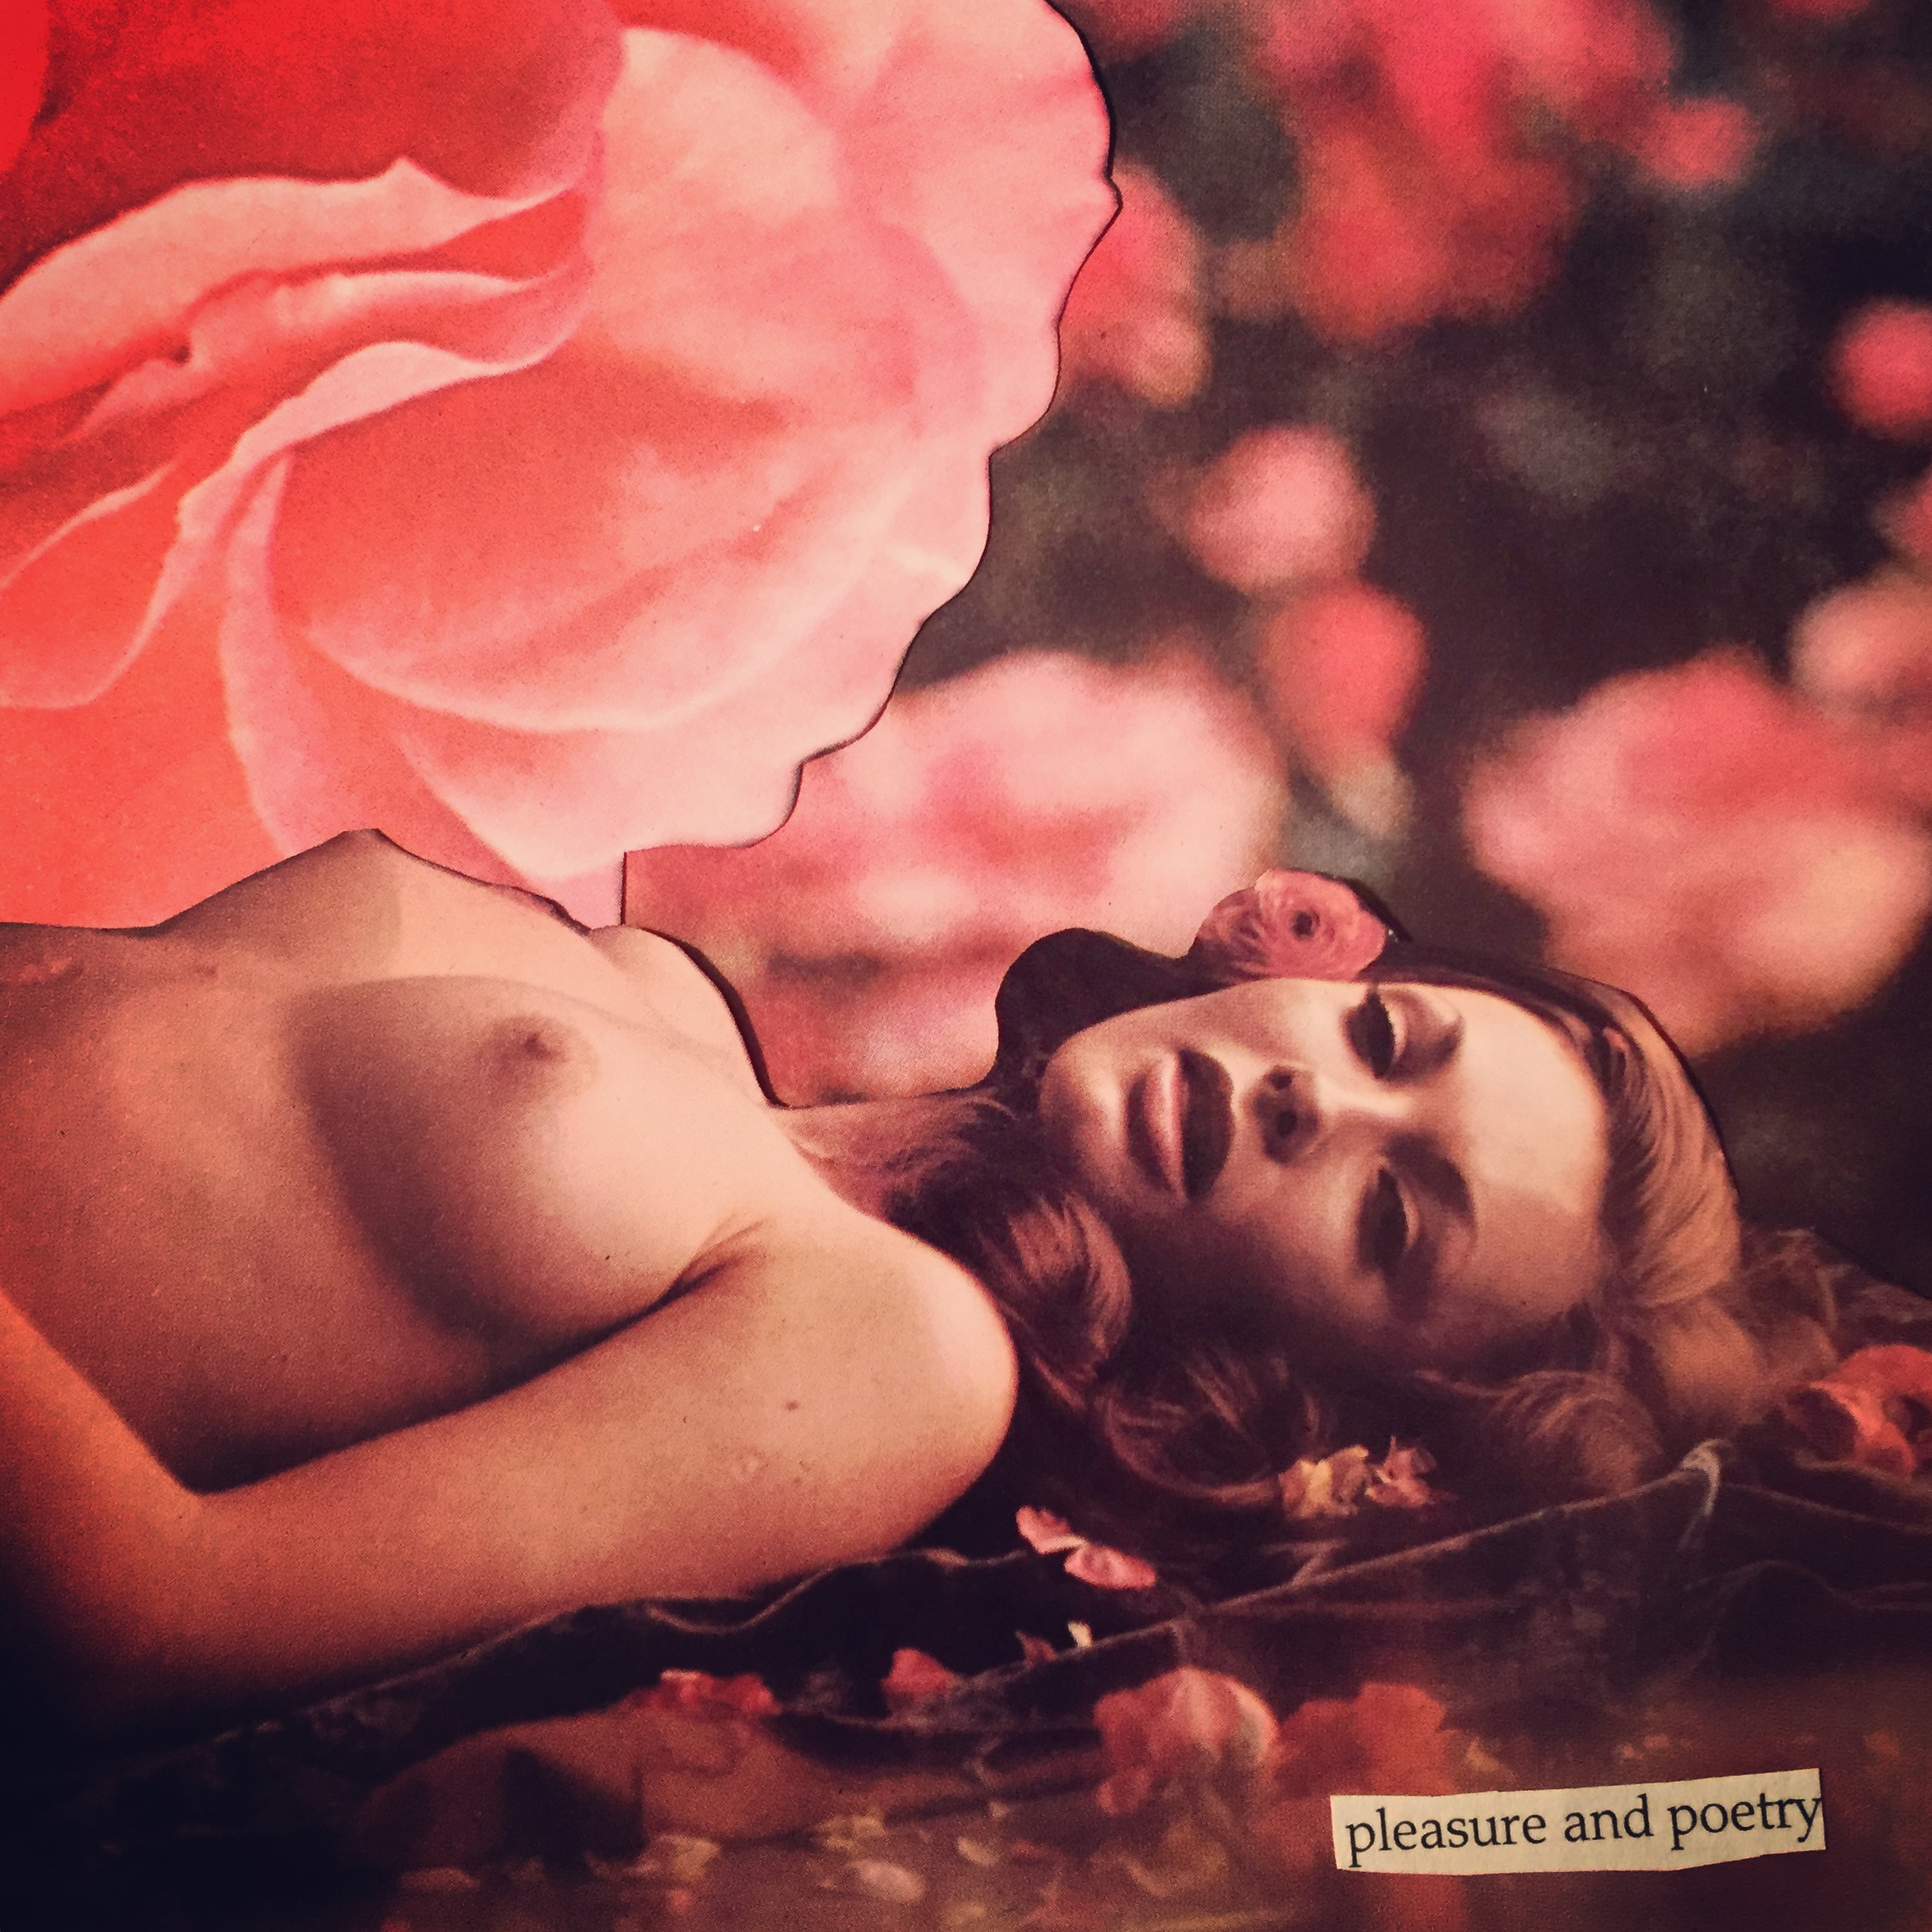 Pleasure and Poetry by Joan Pope (sexdeathrebirth)